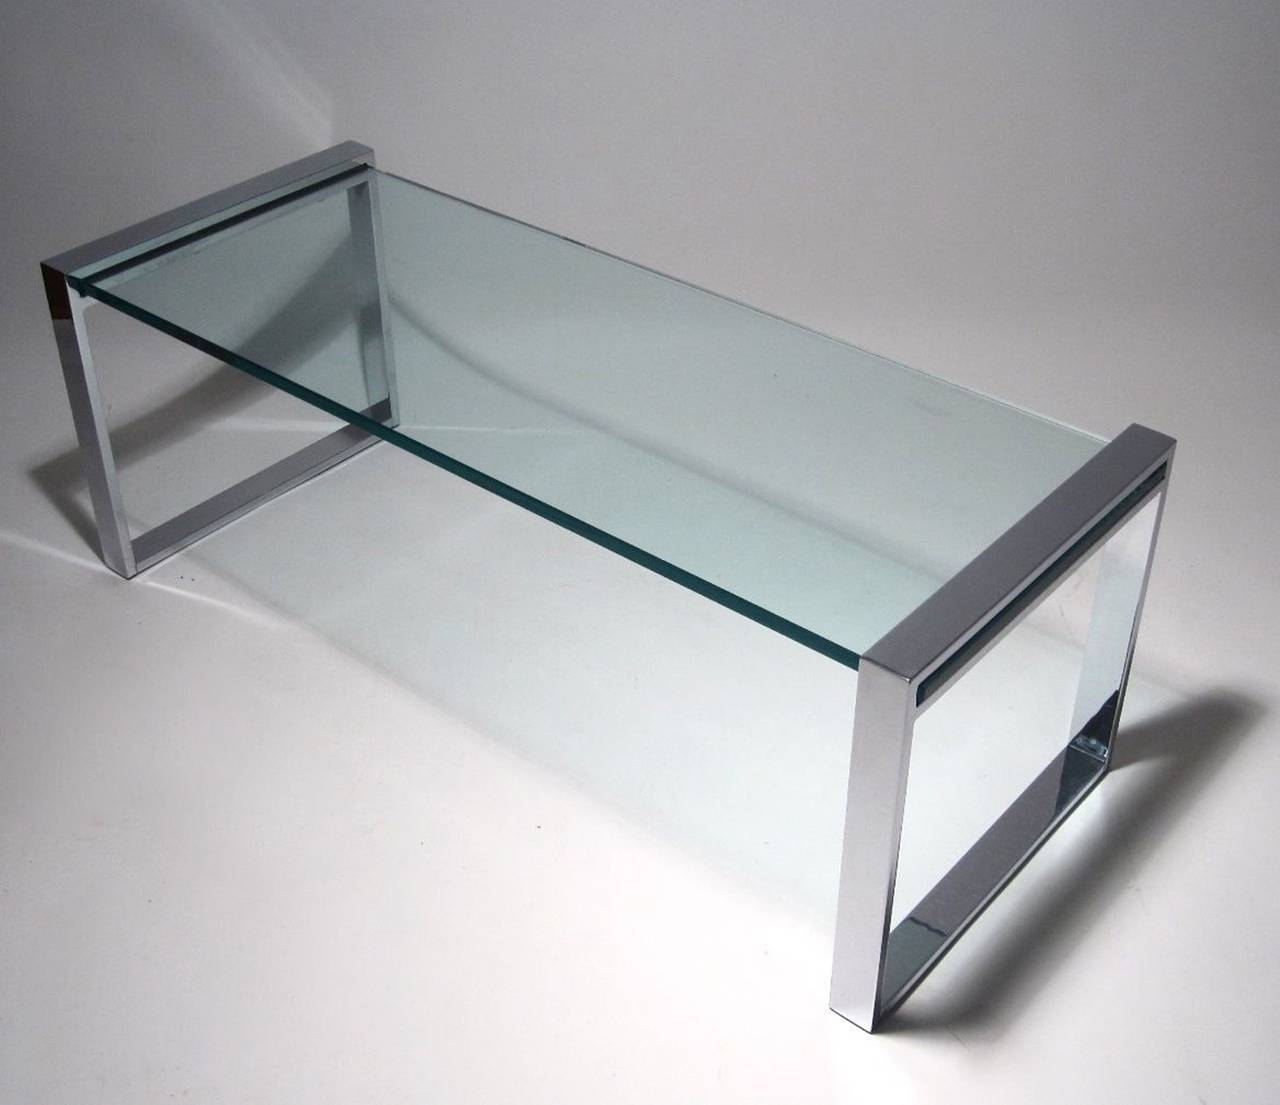 Charles hollis jones box coffee table in nickel and glass for sale at 1stdibs Glass box coffee table